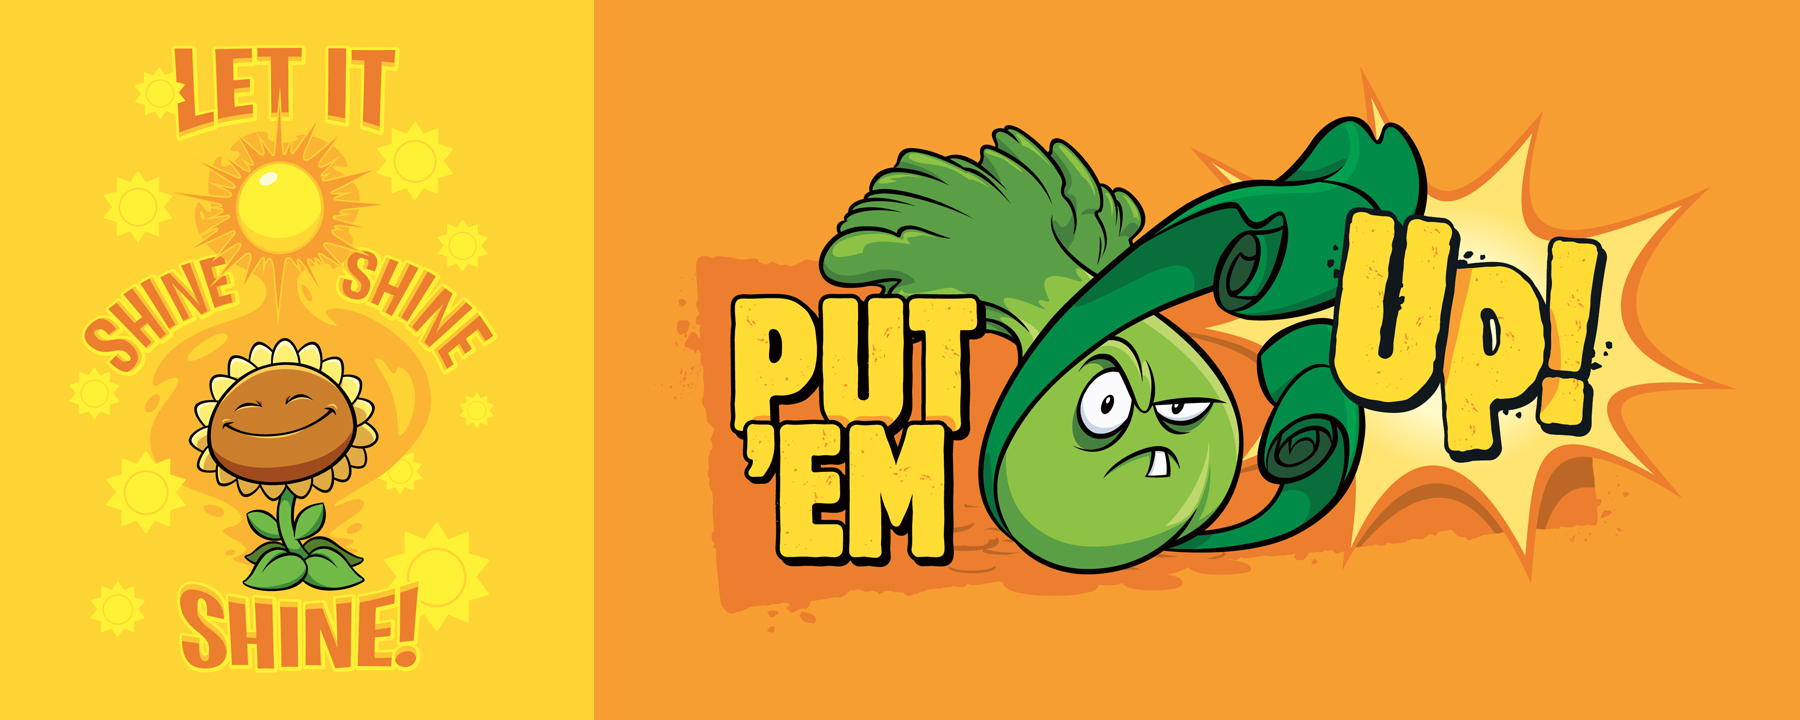 Plants vs. Zombies Style Guide Design - Thumb 6